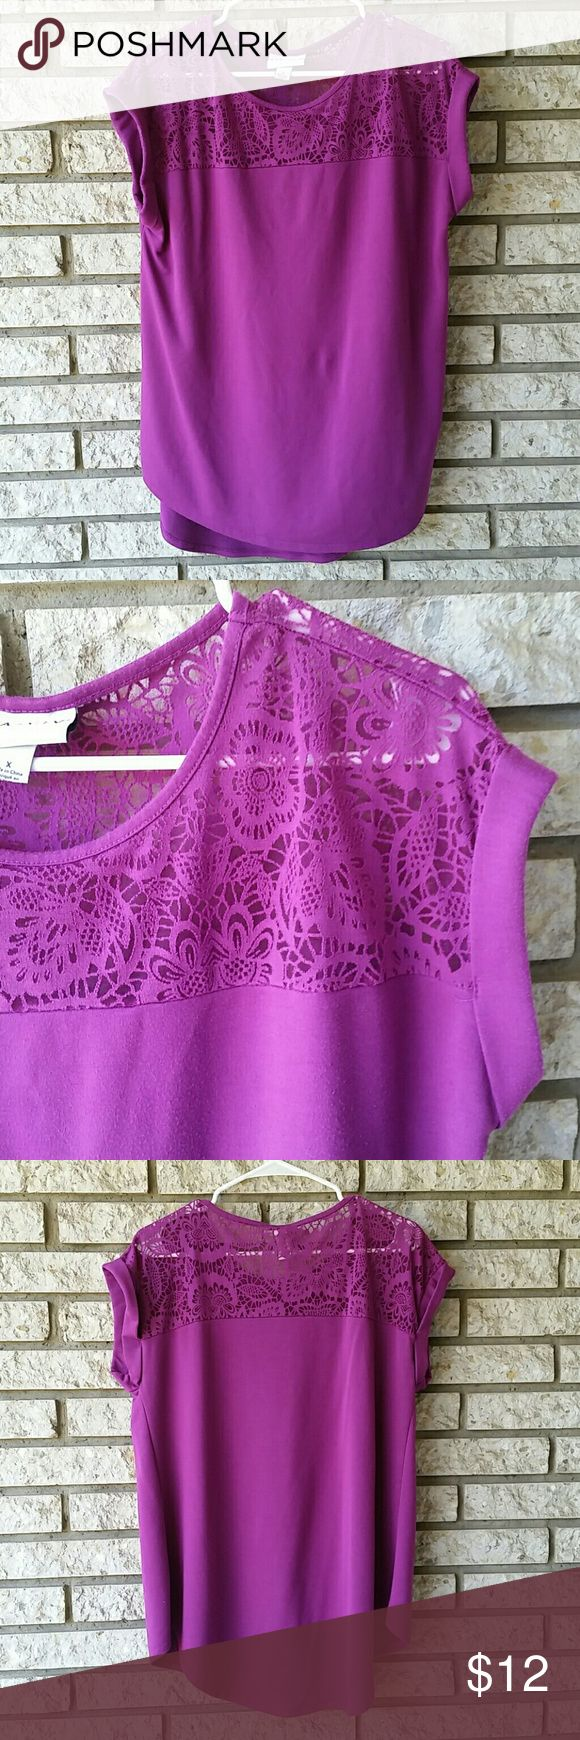 """Violet short sleeve tee with lace like detail This beautiful shirt is another I'm sad to part with as it helped me transition from one size to another! This is easily worn as a tunic with leggings or with pants or skirts. It dresses up and down well. The color is so vibrant and cheerful, I have yet to find this color in any other item of clothing yet! It says size X but I think it fits a lot like an xl other than the length. I'm 5'7"""" and loved having the extra length on this shirt. Ava Viv…"""